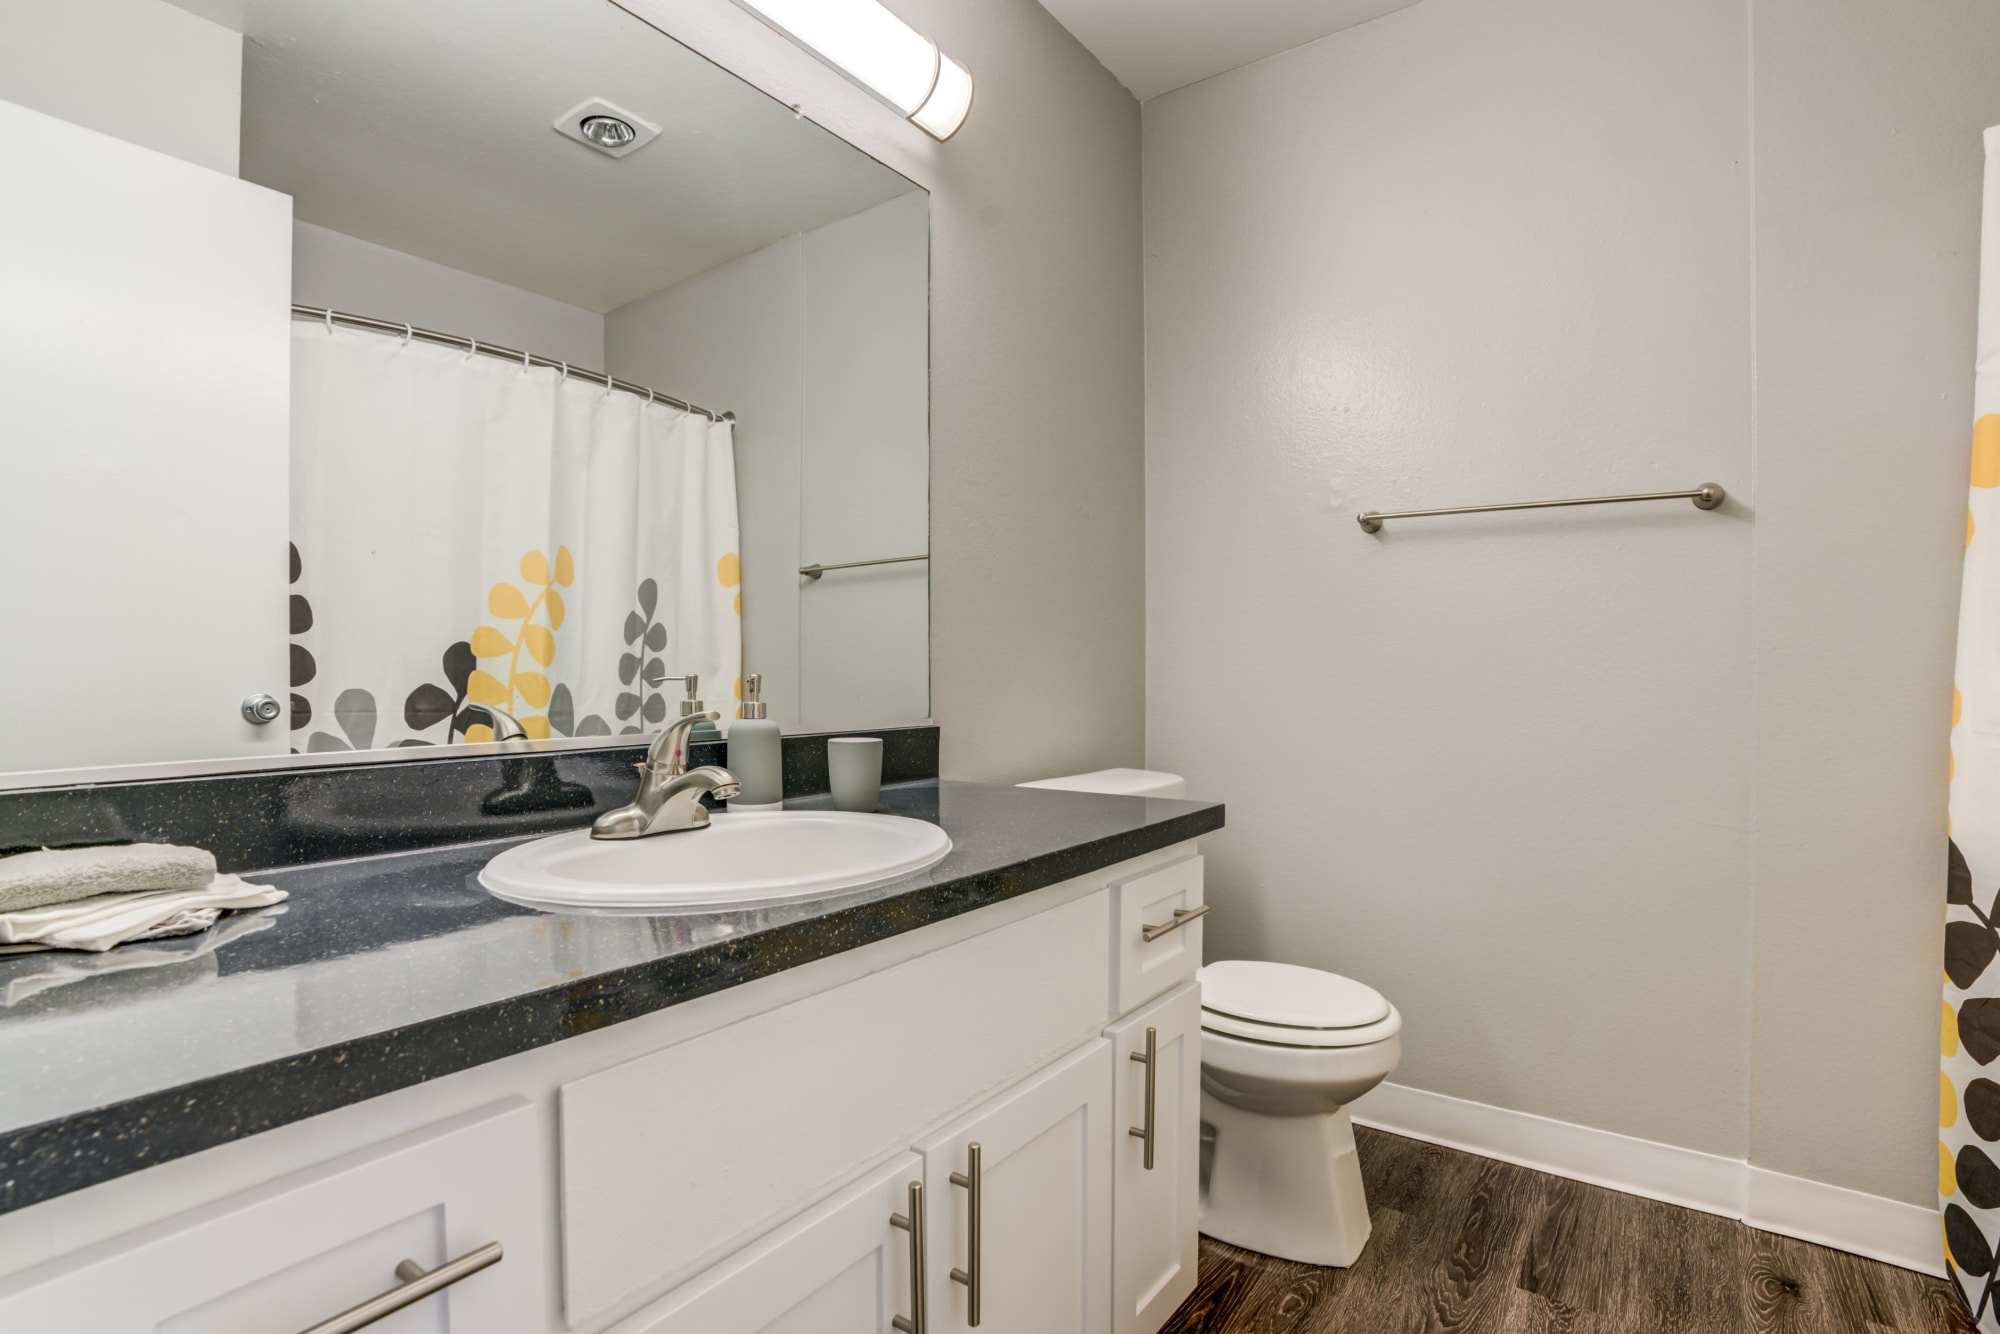 Renovated bathroom with white cabinetry at The Timbers Apartments in Hayward, California